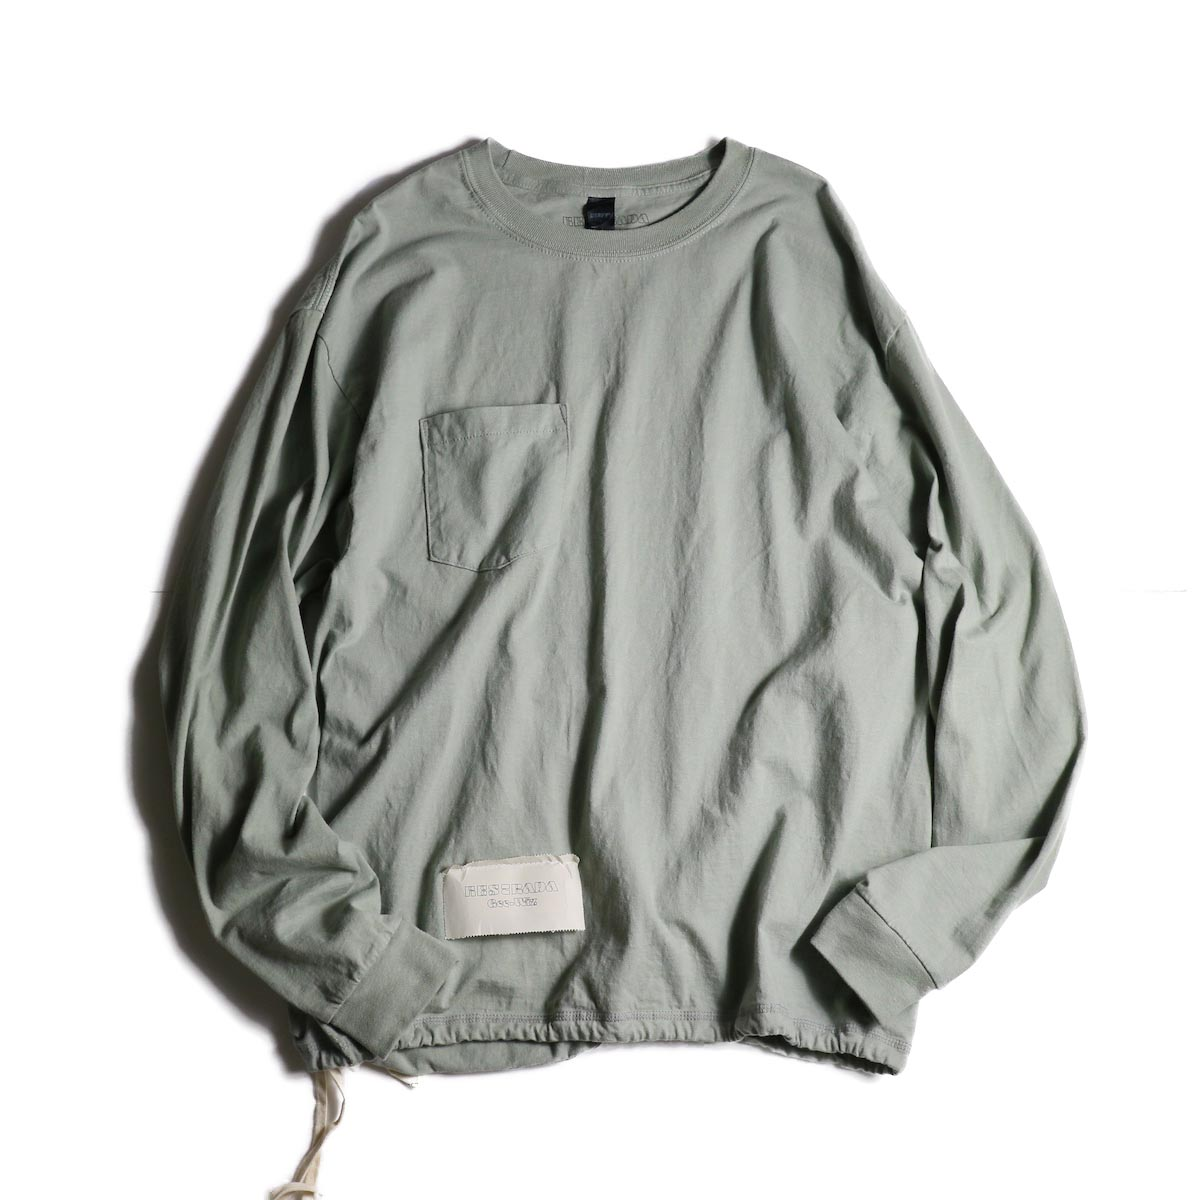 HESTRADA GEE-WIZ / SWITCH L/S Tee (Stone Green)正面